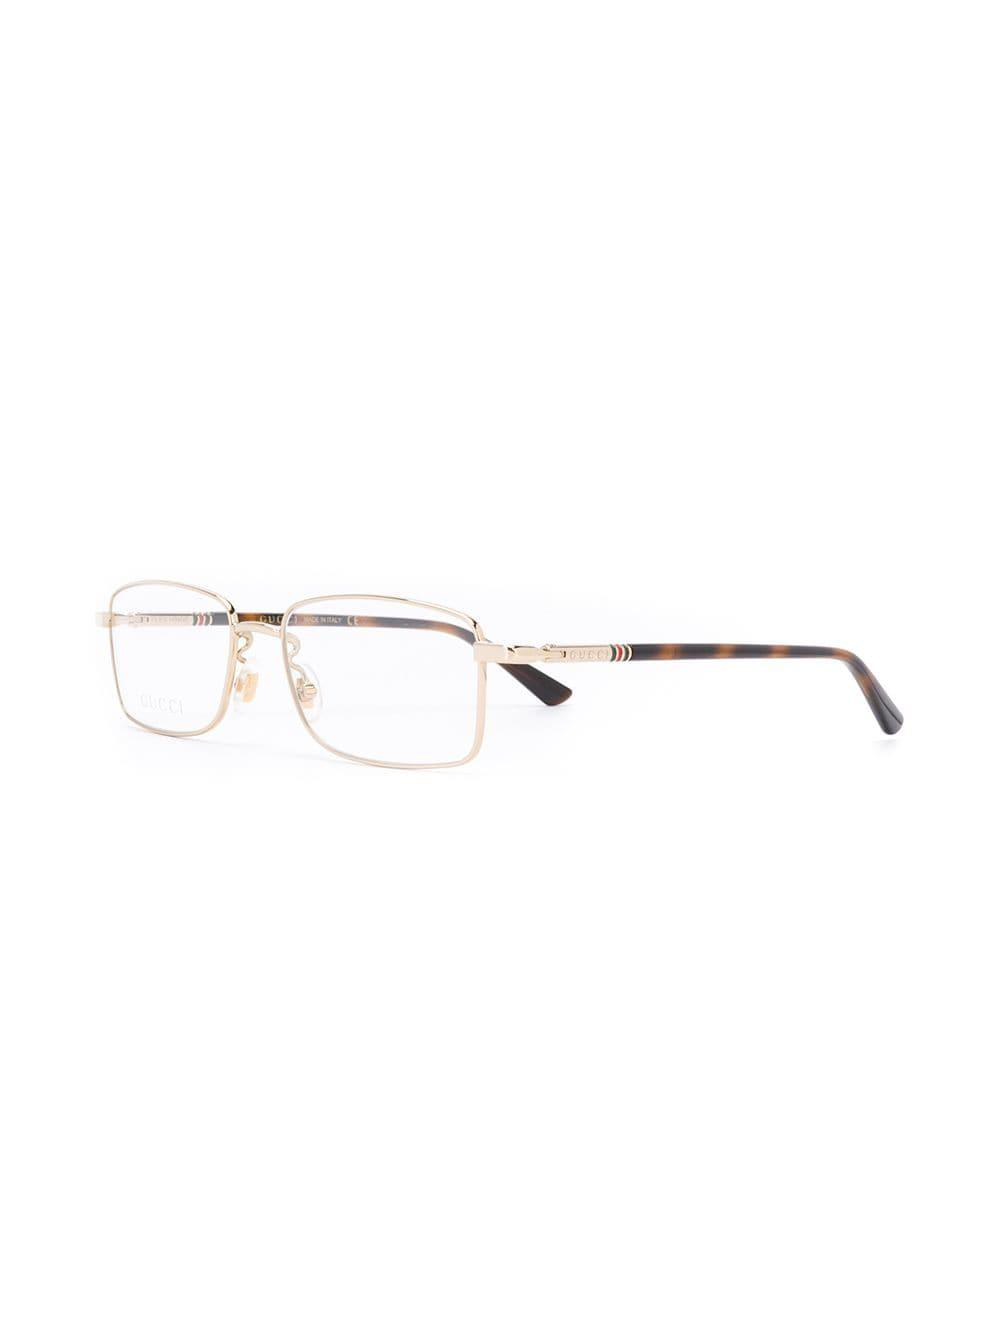 9c51ce7445510 Lyst - Gucci Rectangle Frame Glasses in Metallic for Men